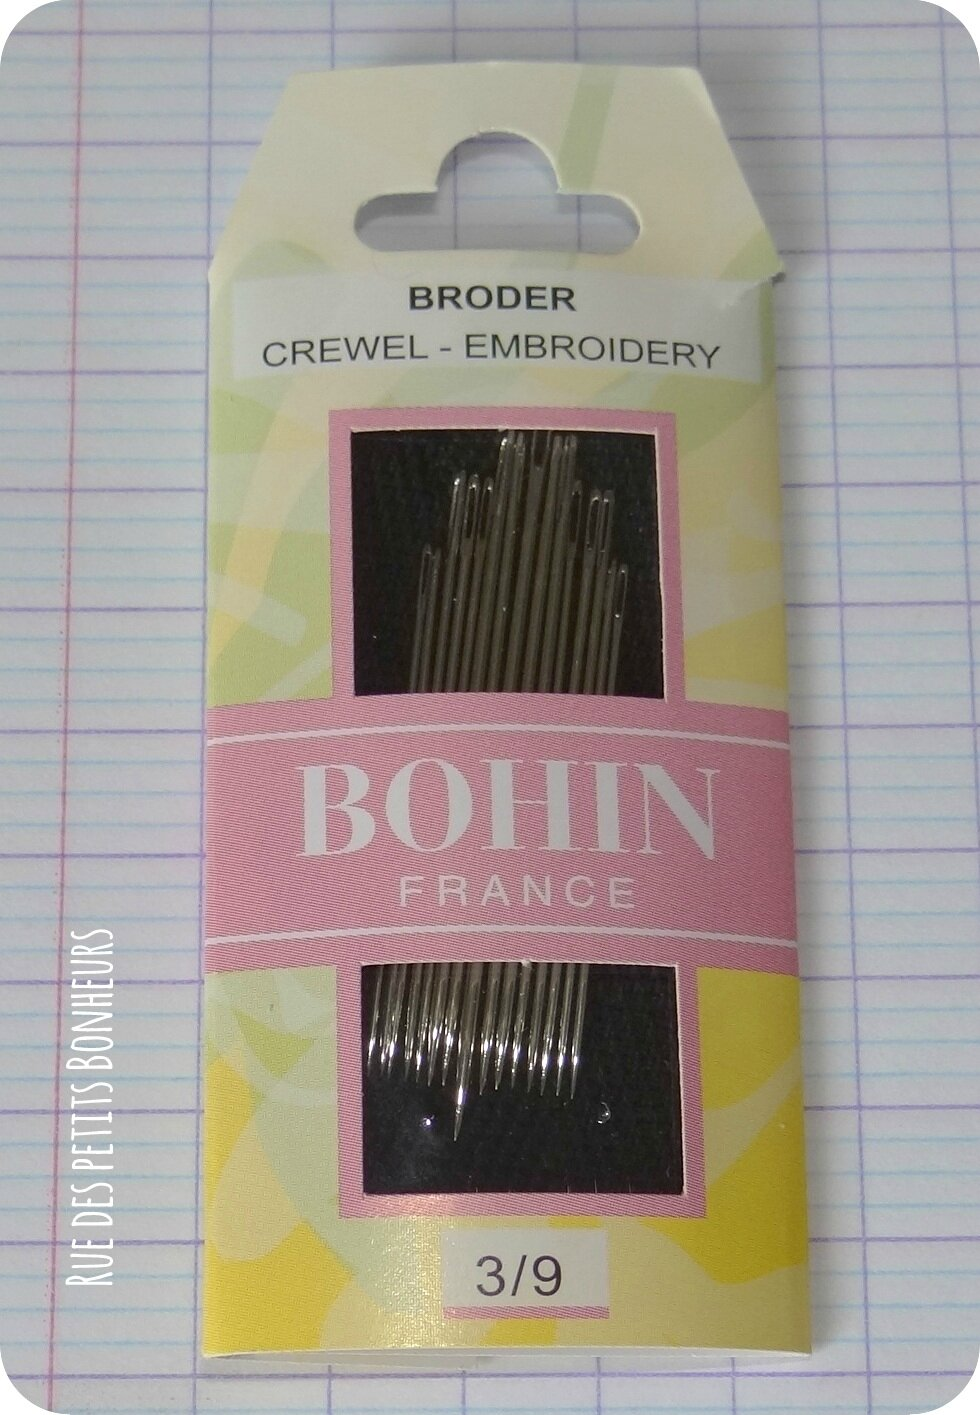 Aiguilles broderie 3/9